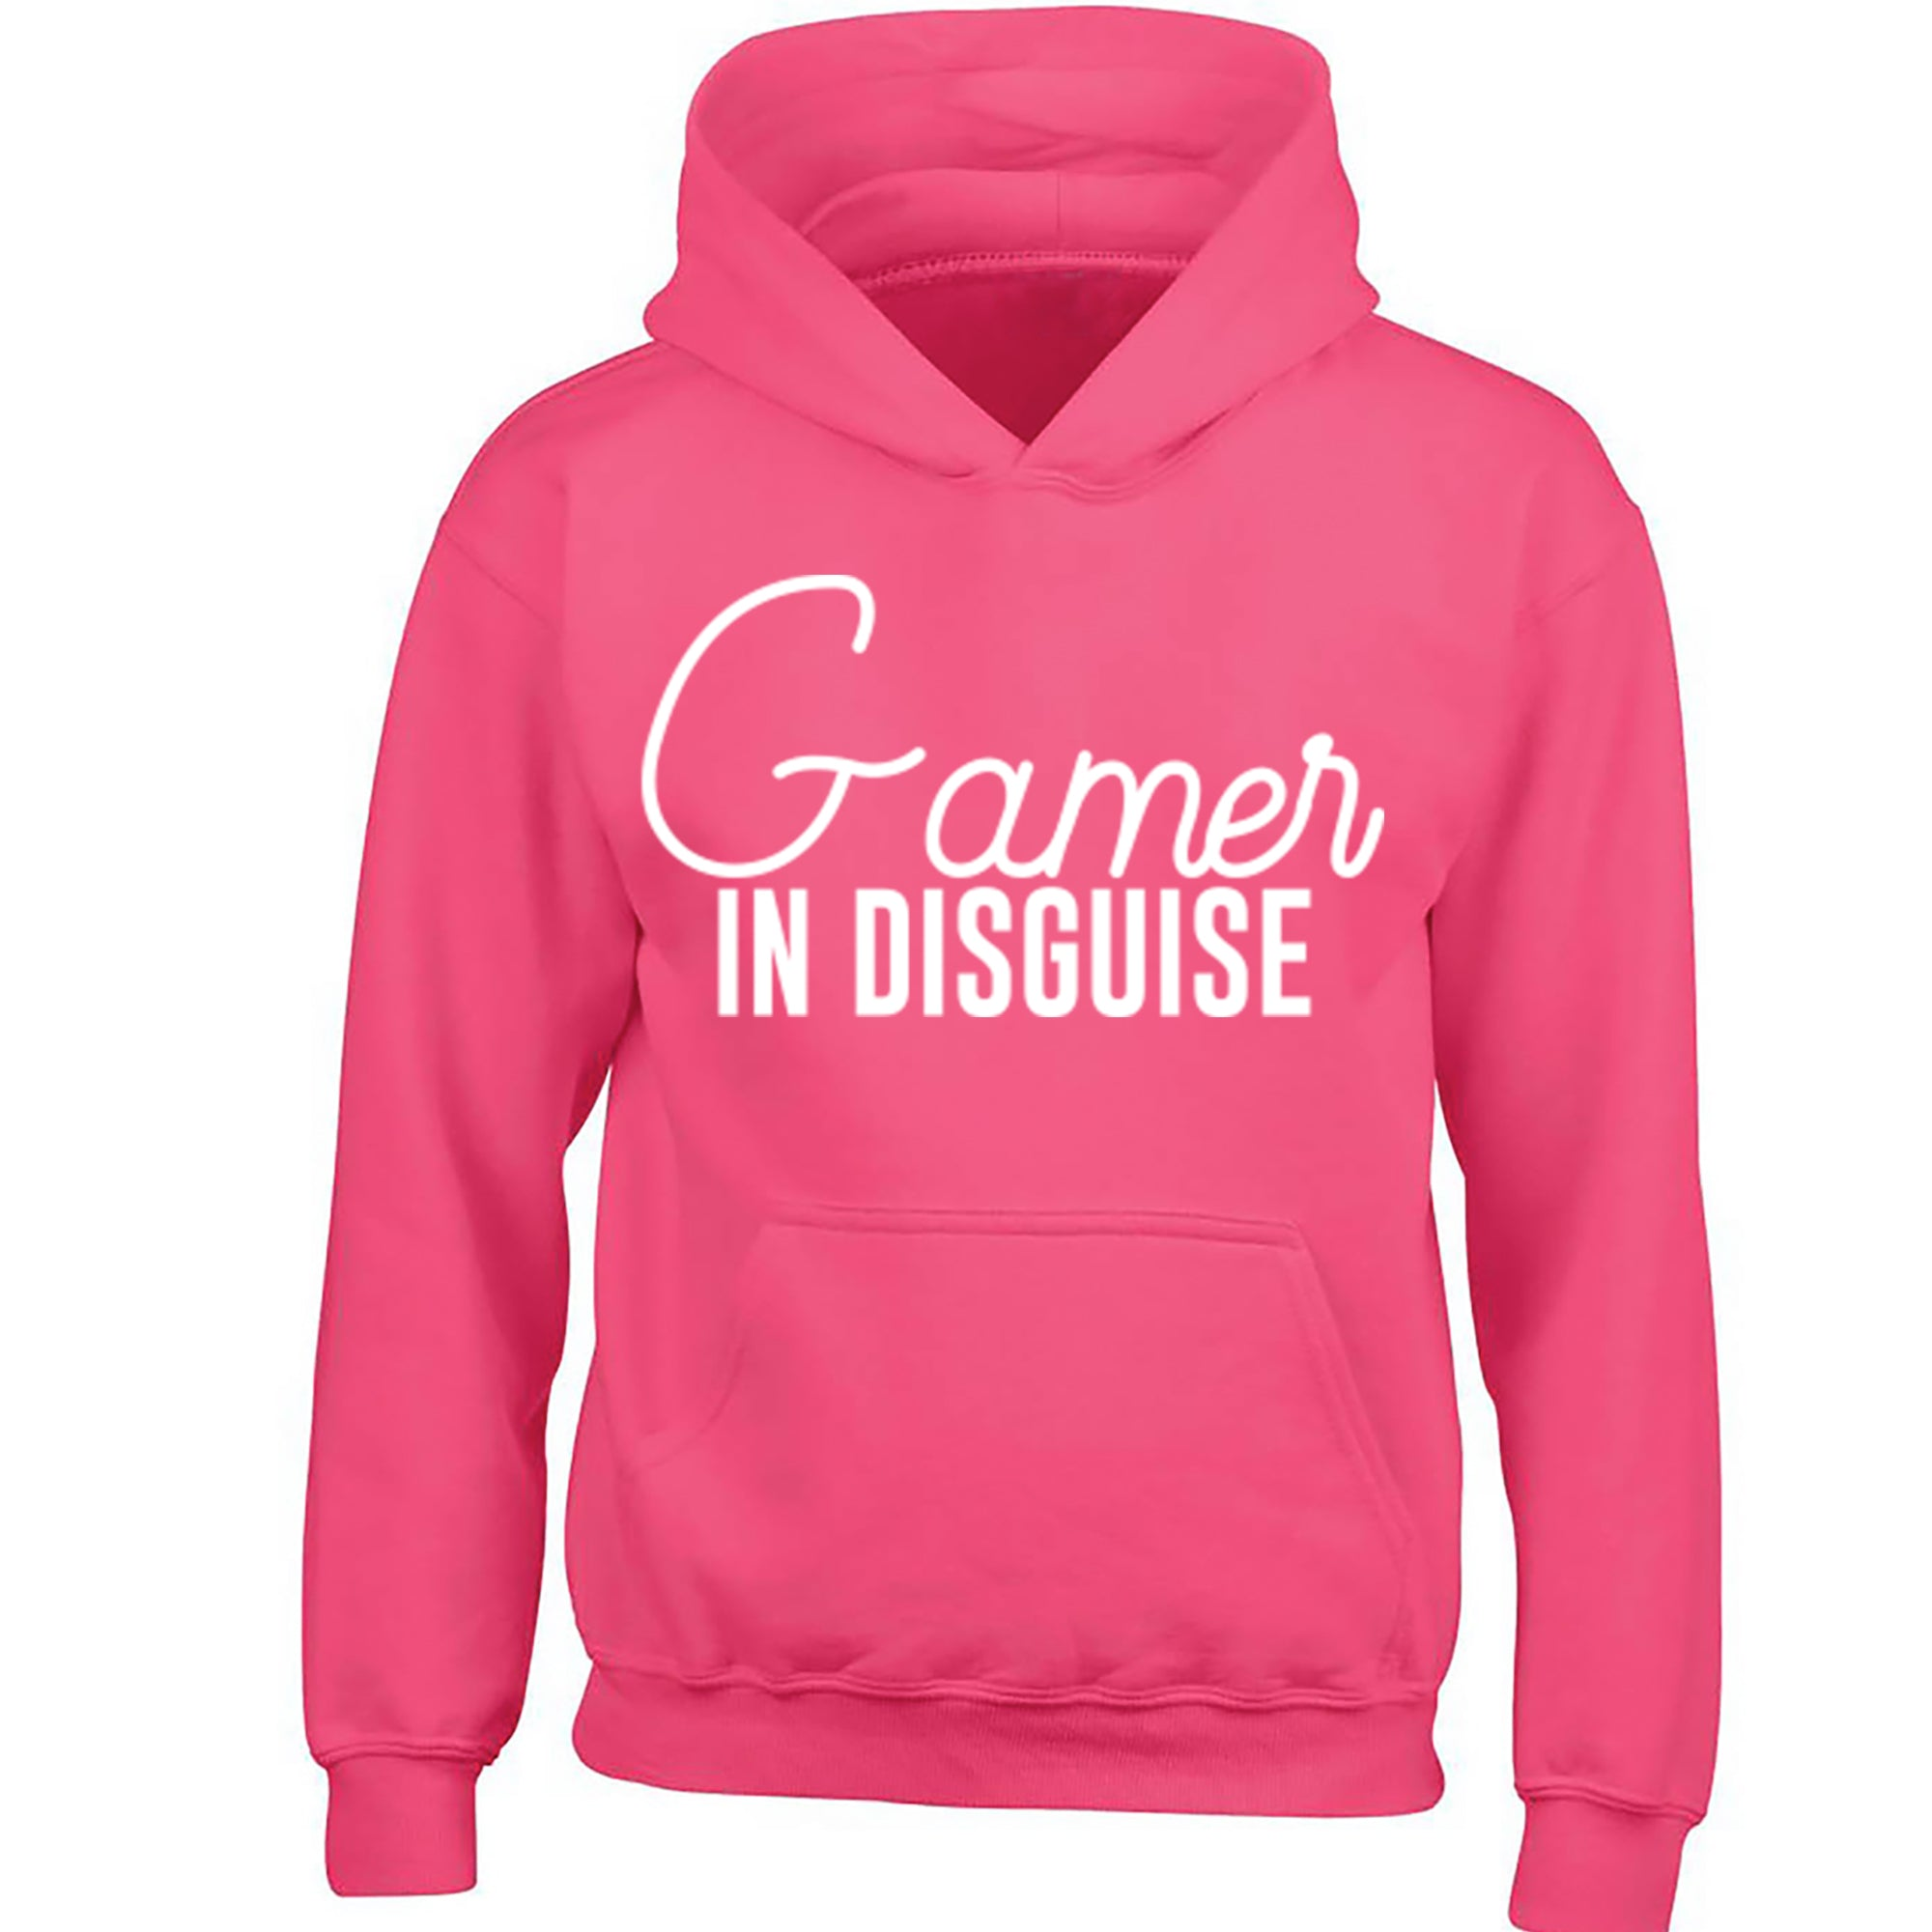 Gamer In Disguise Childrens Ages 3/4-12/14 Unisex Hoodie S0048 - Illustrated Identity Ltd.